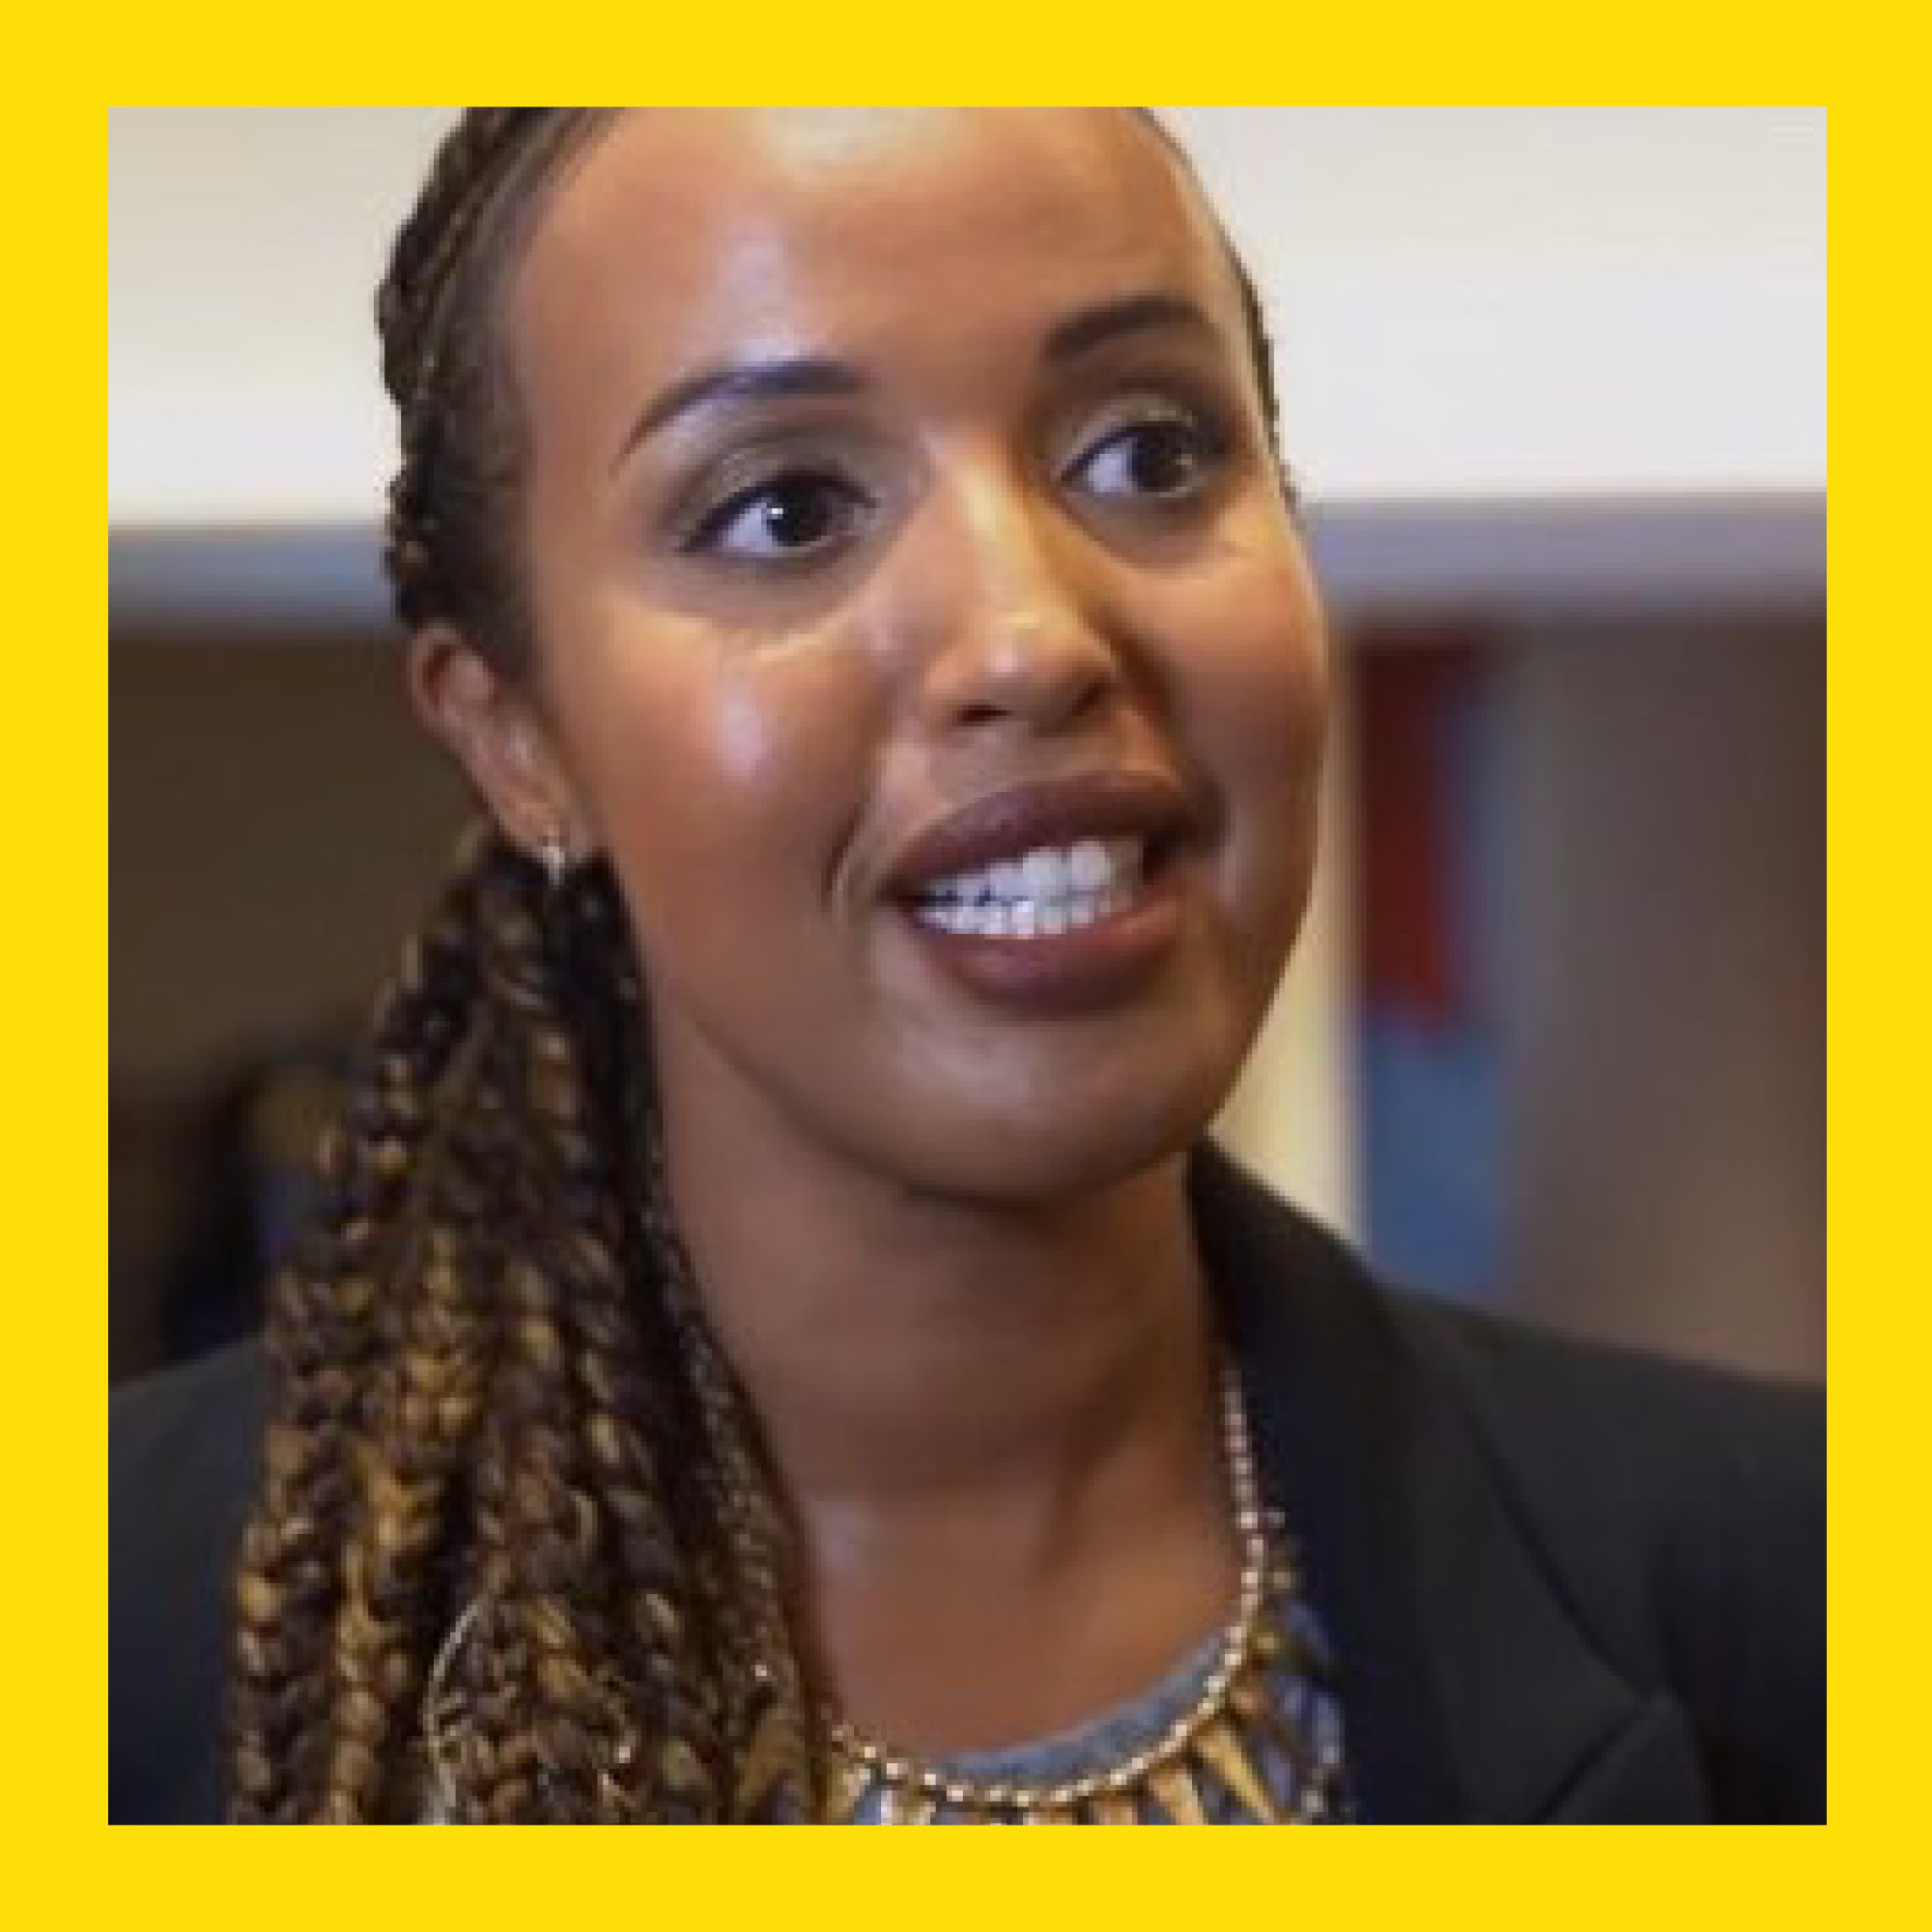 """- Hanna Ali is an author who recently published her debut short story collection titled The Story of Us. Hanna is a former Radio Presenter and was listed as number 4 in Buzz Feed's """"21 Black British Muslims You Should Know About"""" and was a part of Trailblazing Muslim Women 2018. She is the Festival Director of Somali Week Festival and is a PhD Candidate and Teaching Fellow at SOAS, University of London."""